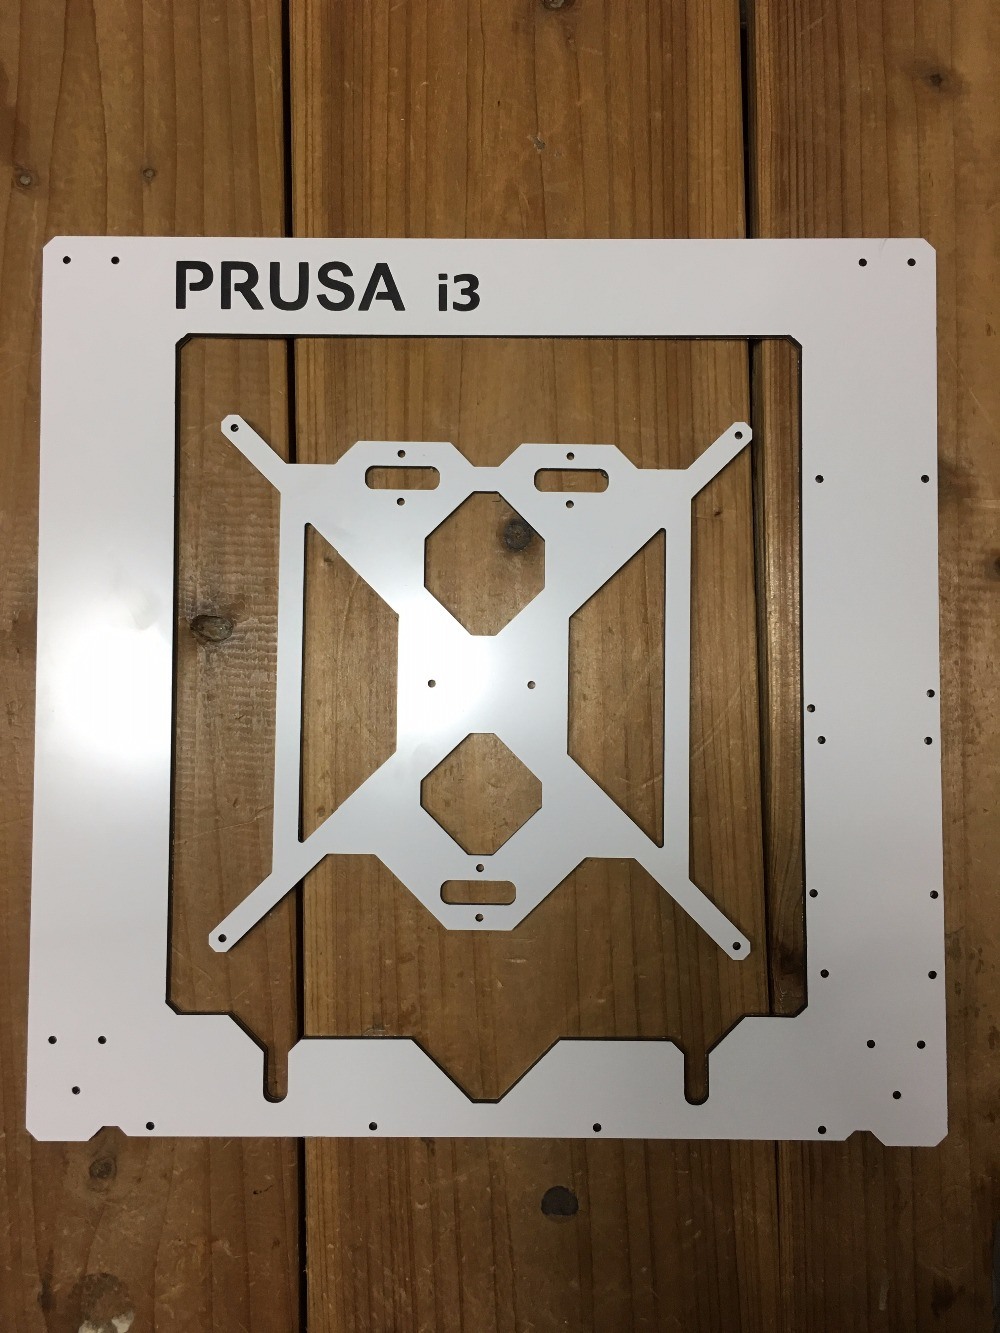 Prusa i3 Rework 3D printer aluminum composite frame kit RepRap Prusa i3 white color composite plate frame 3D Printer DIY 6 mm ultimaker 2 extended assemble frame plate for diy 3d printer aluminum composite plate 6mm thickness case housing 350 390 340